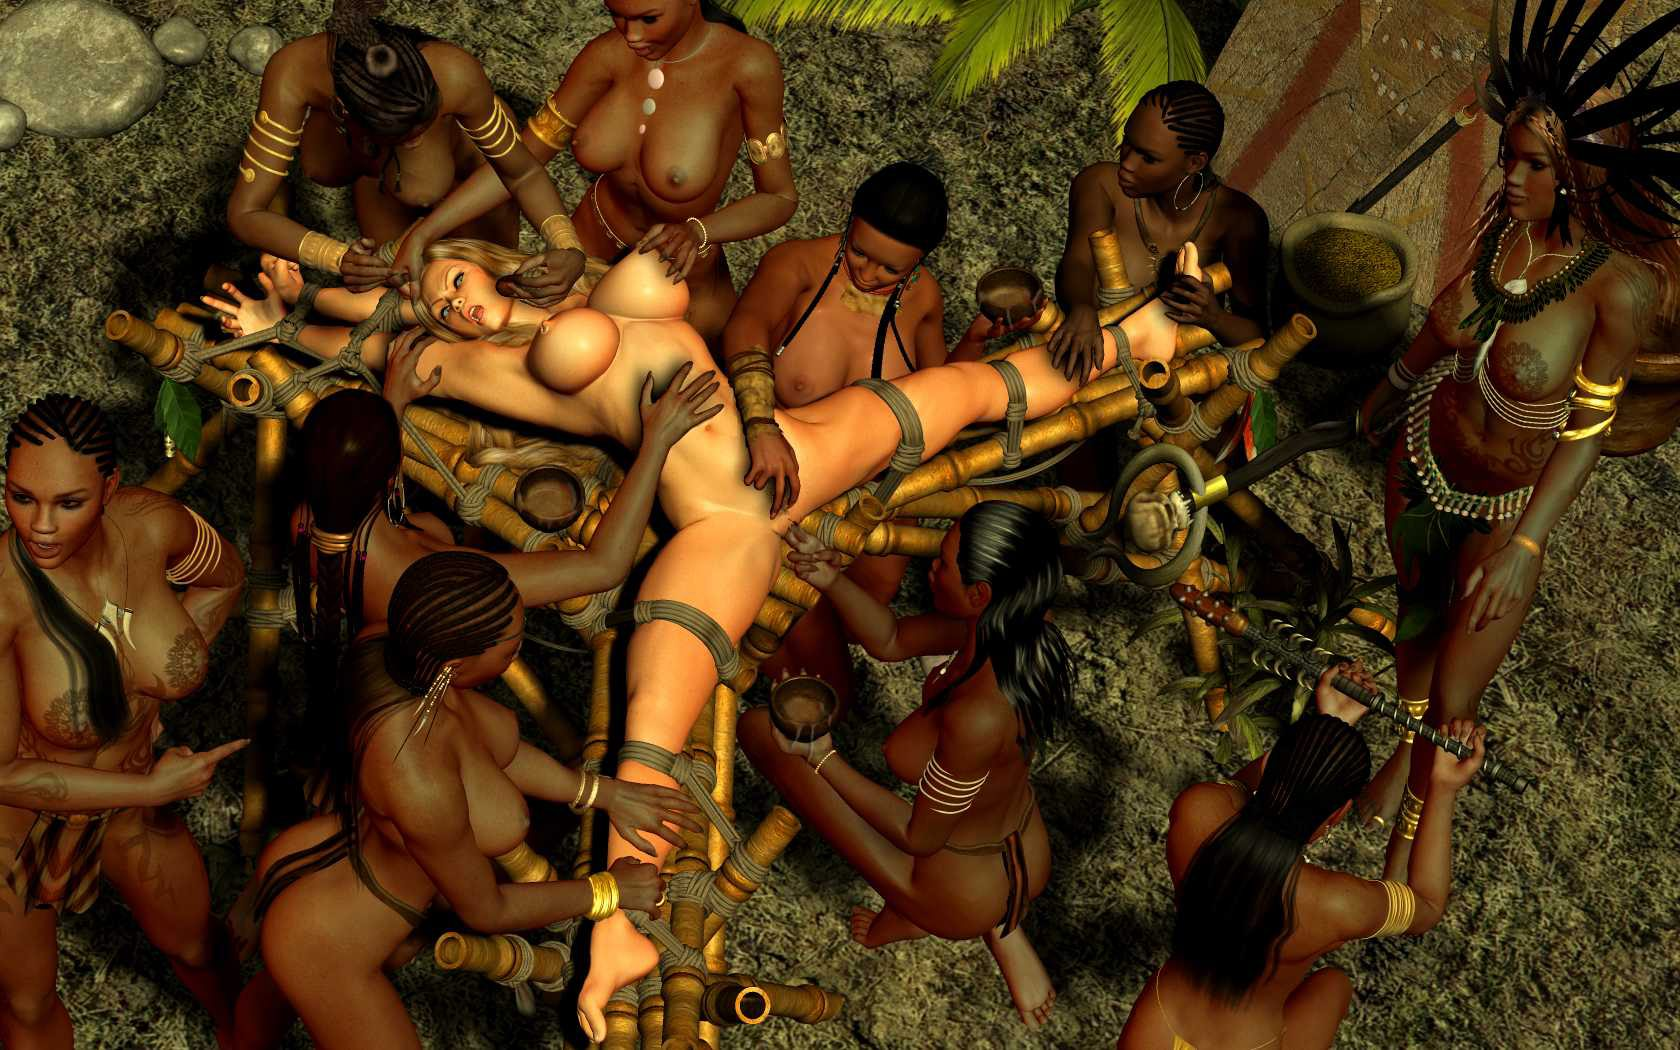 African slave fantasy porn galleries